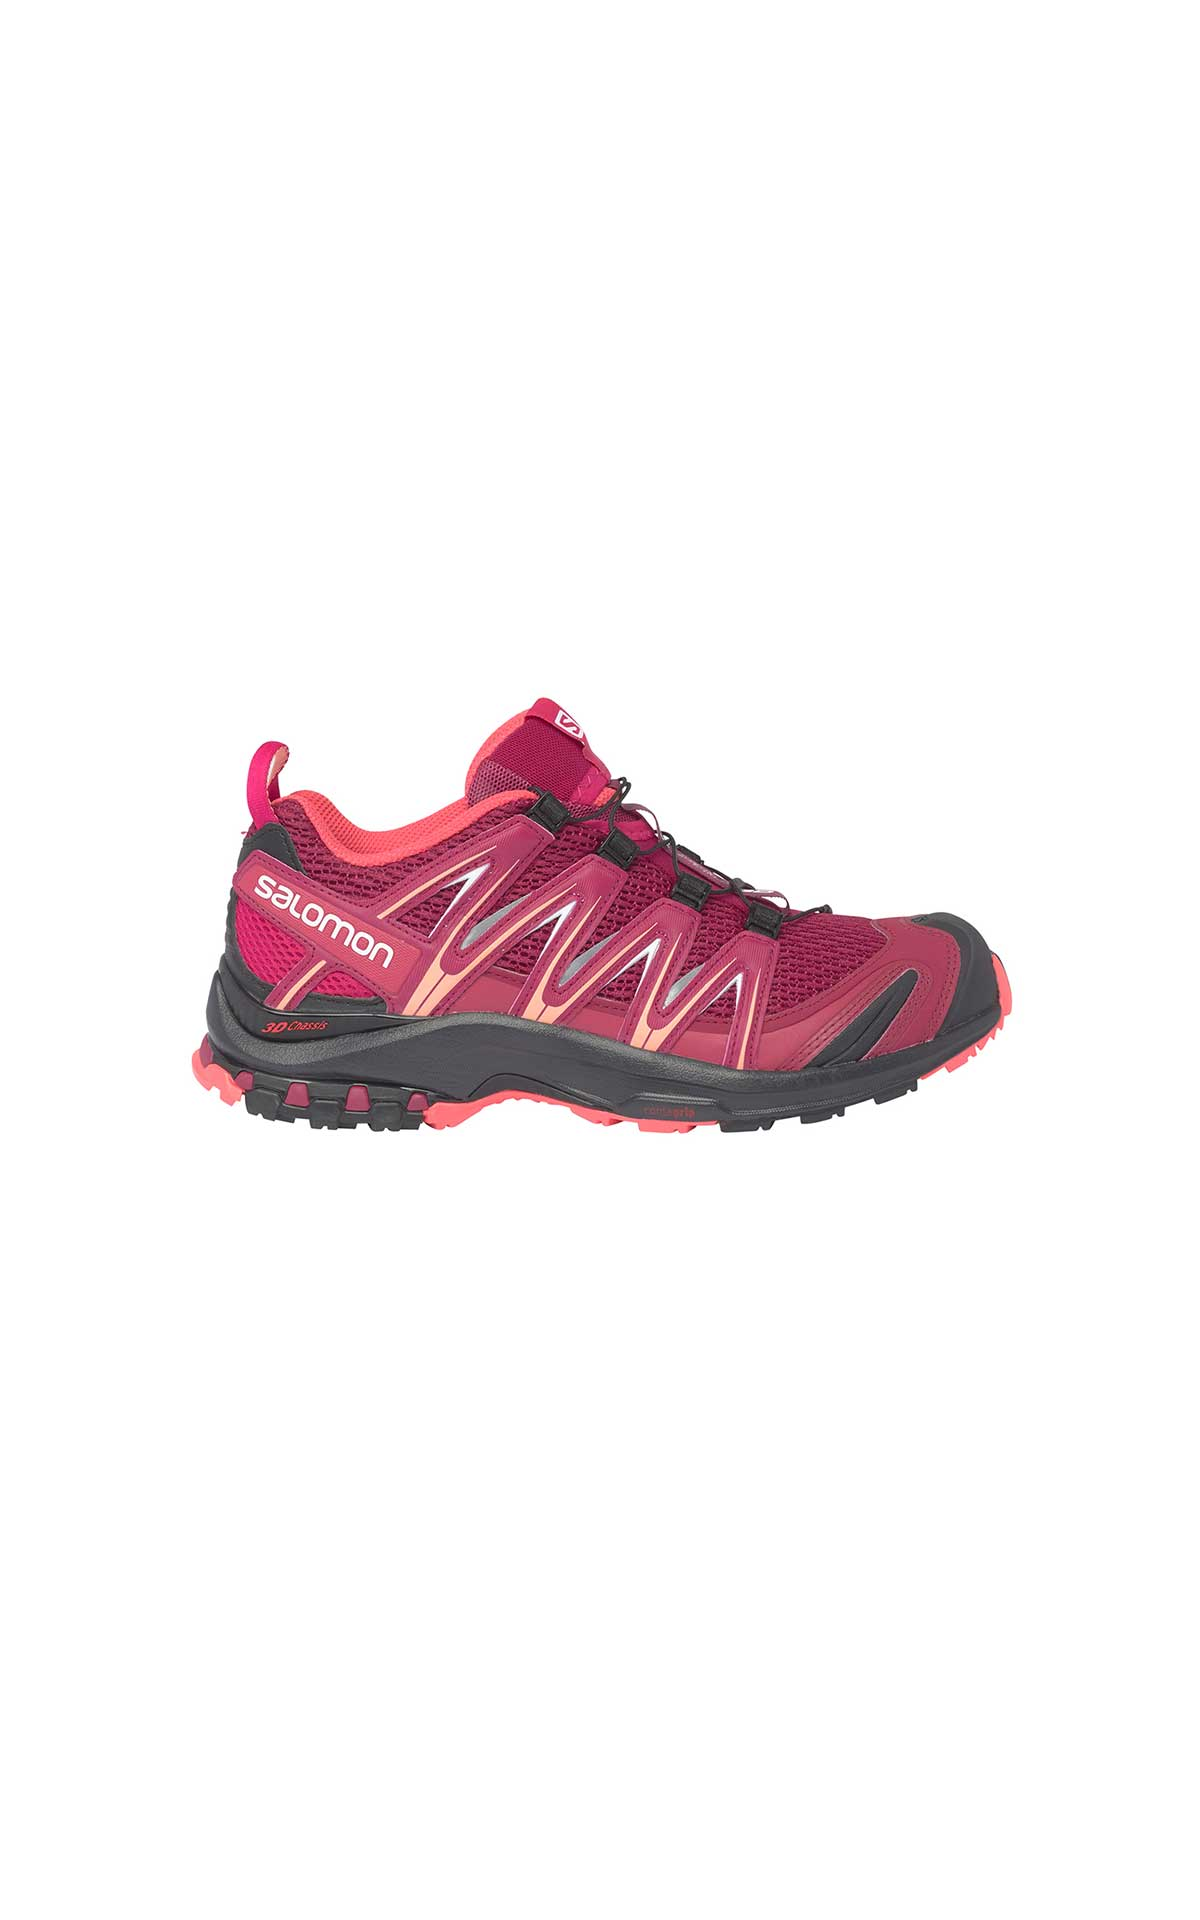 Pink montrail sneakers woman Salomon